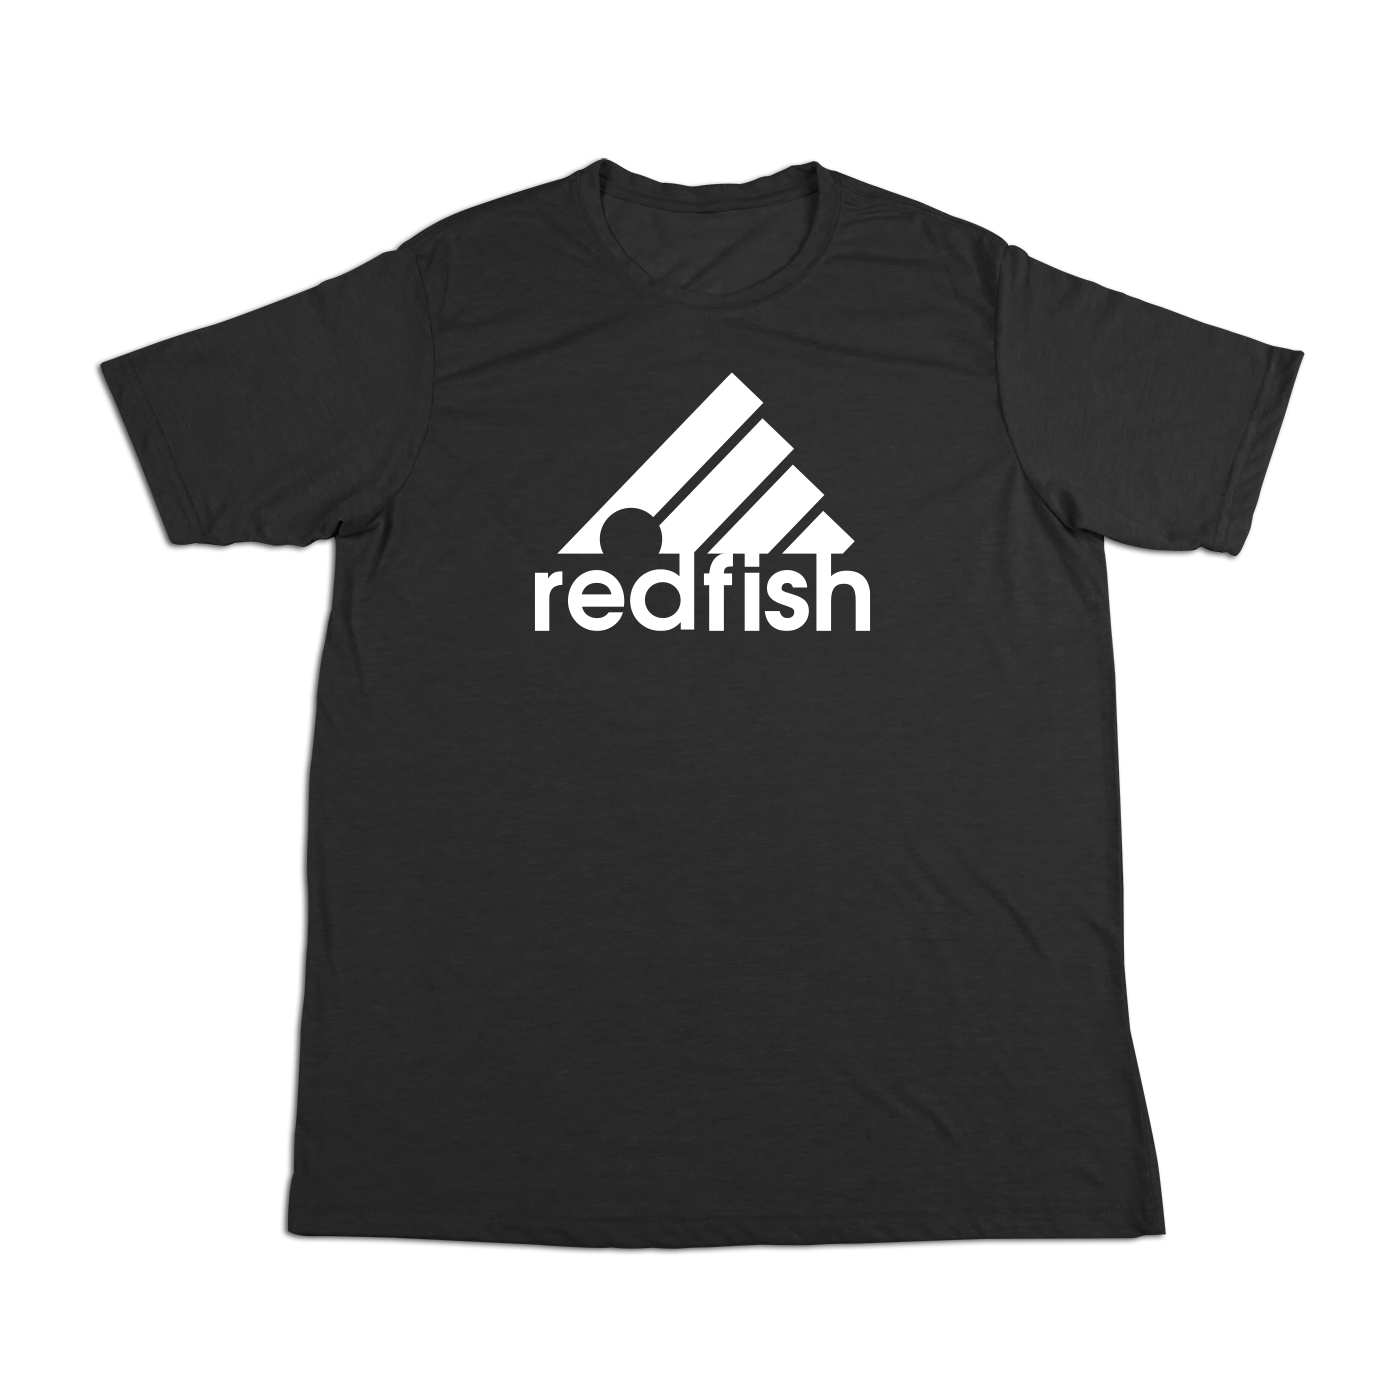 #REDFISH Soft Short Sleeve Shirt - Hat Mount for GoPro